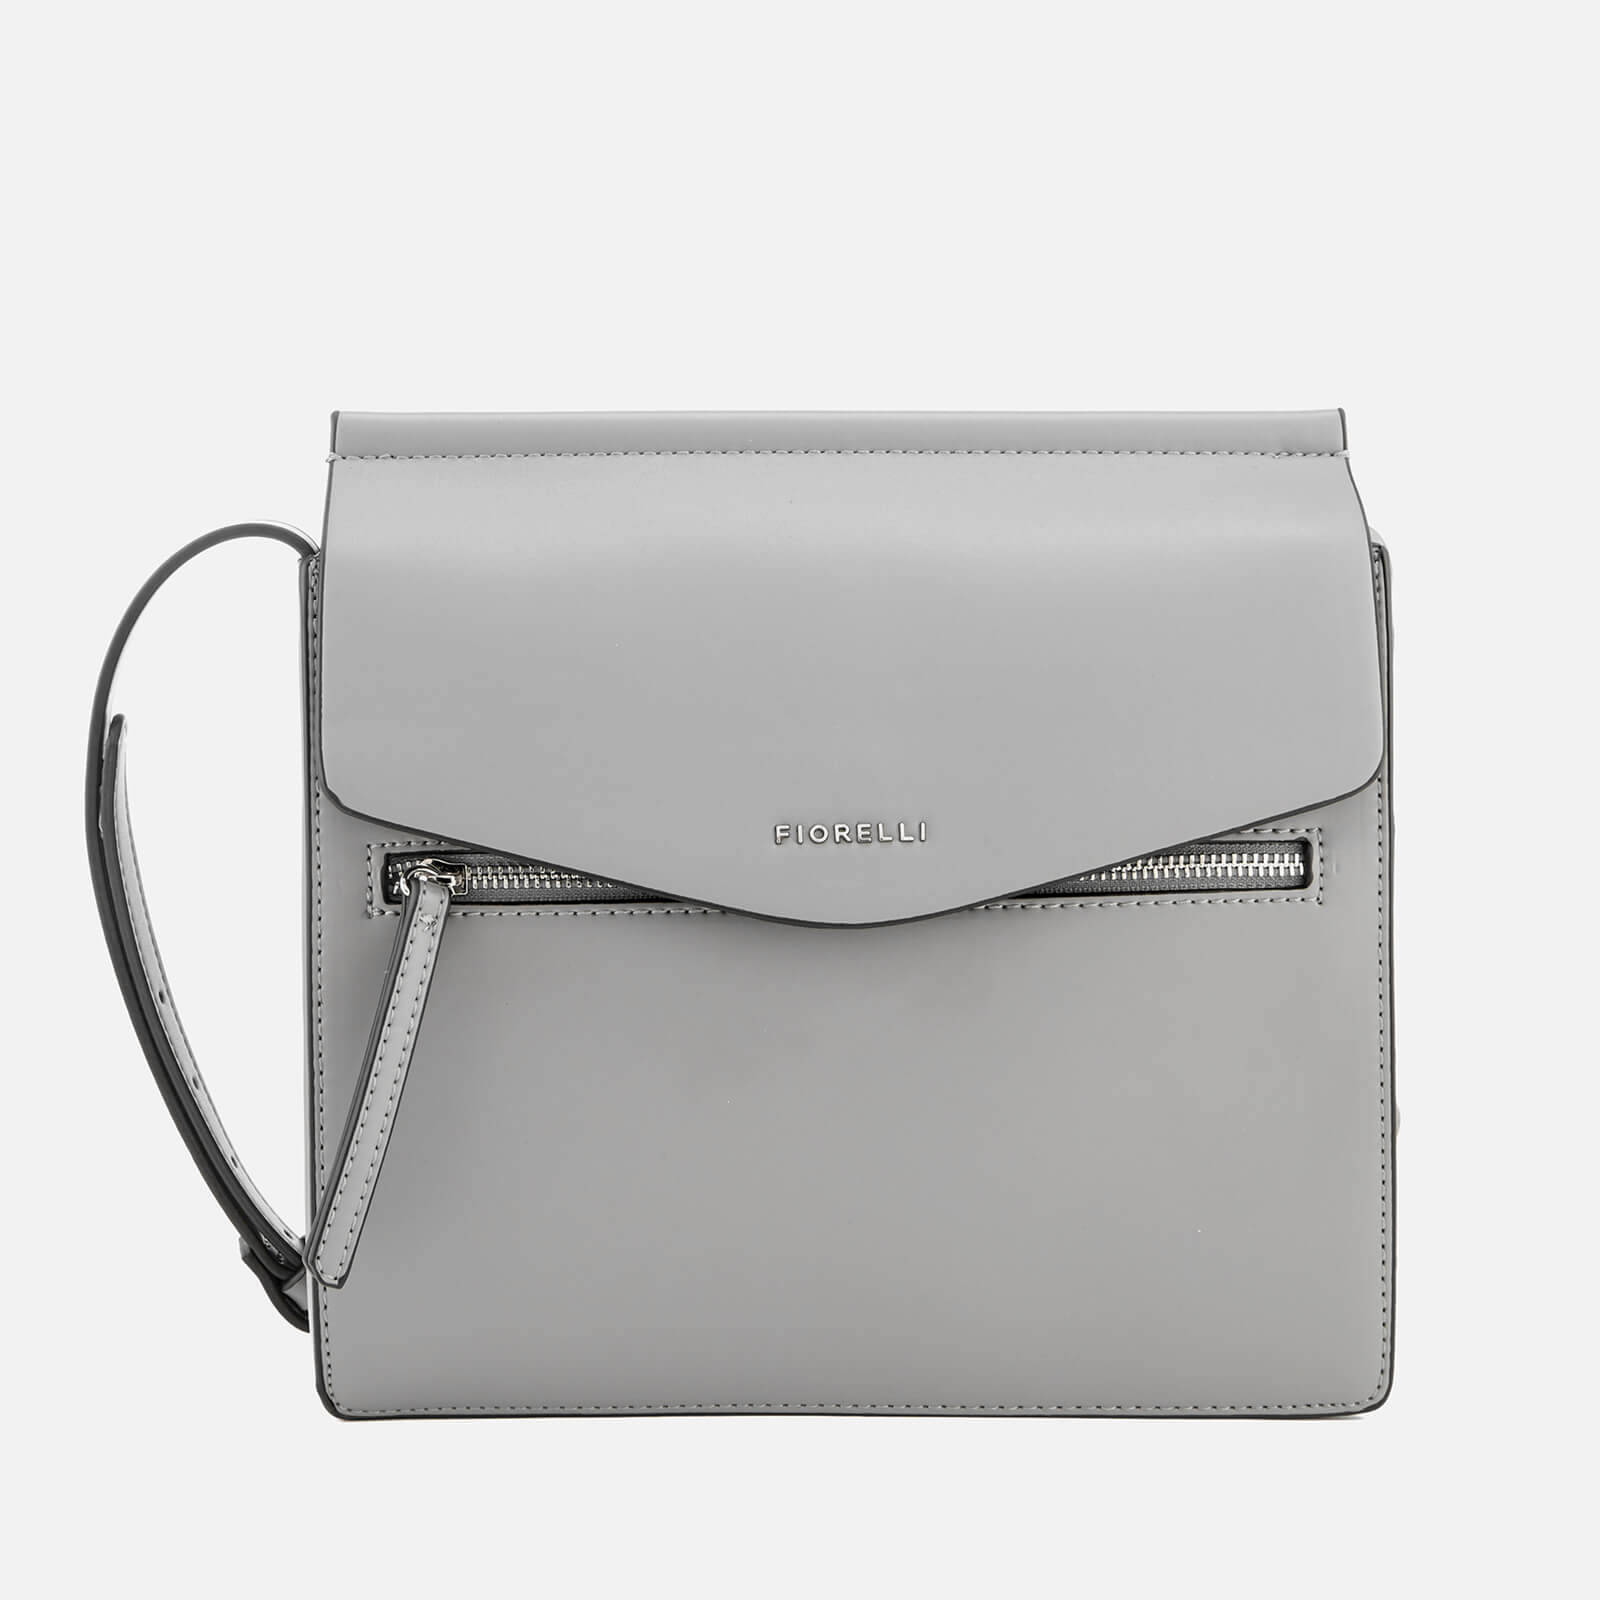 135058bafbc8 Fiorelli Women's Mia Large Cross Body Bag - Belgrave Grey